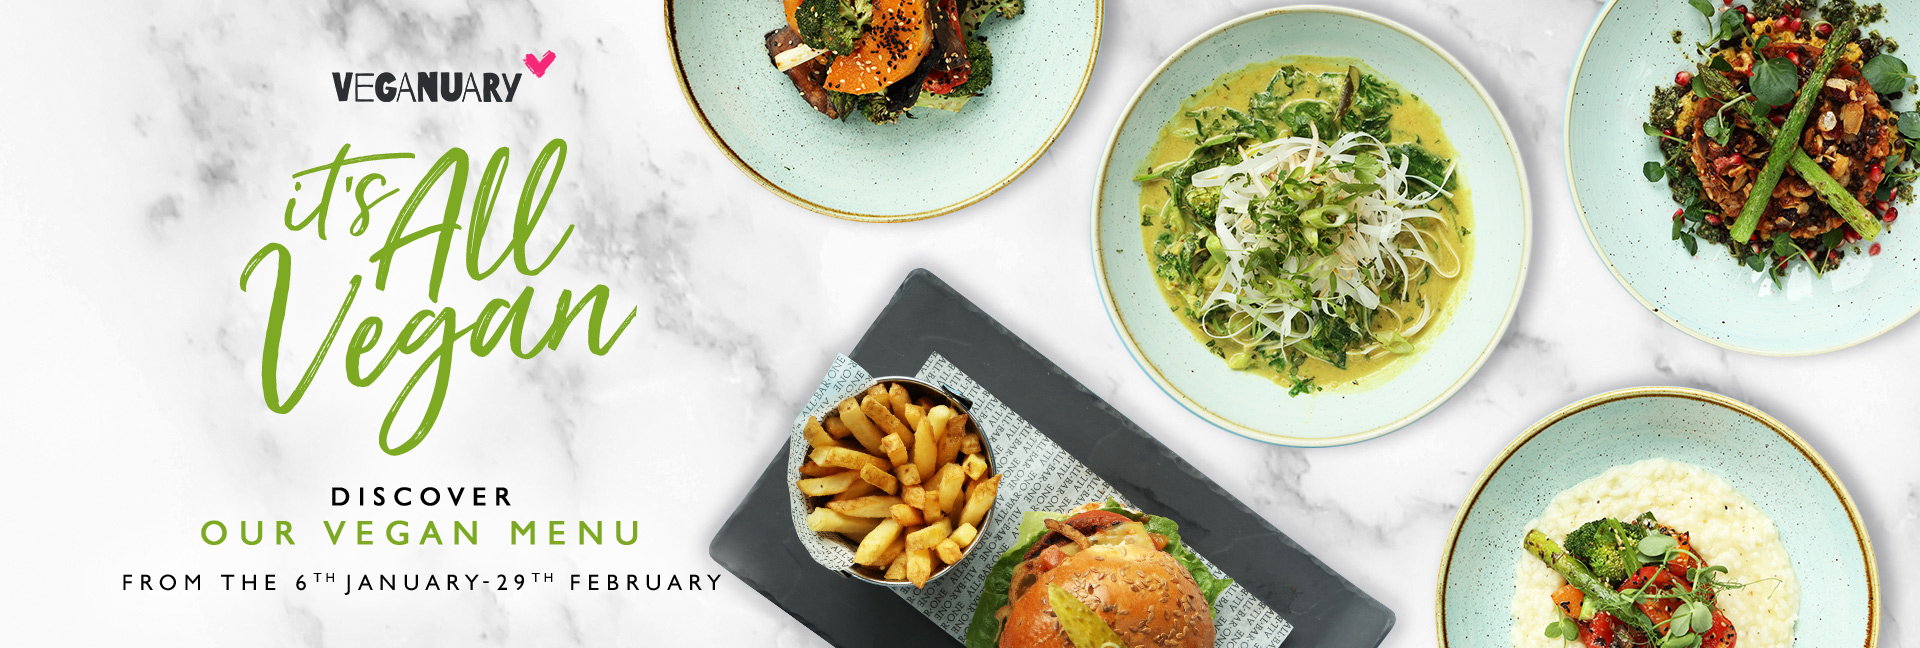 Veganuary Menu at All Bar One New Street Station